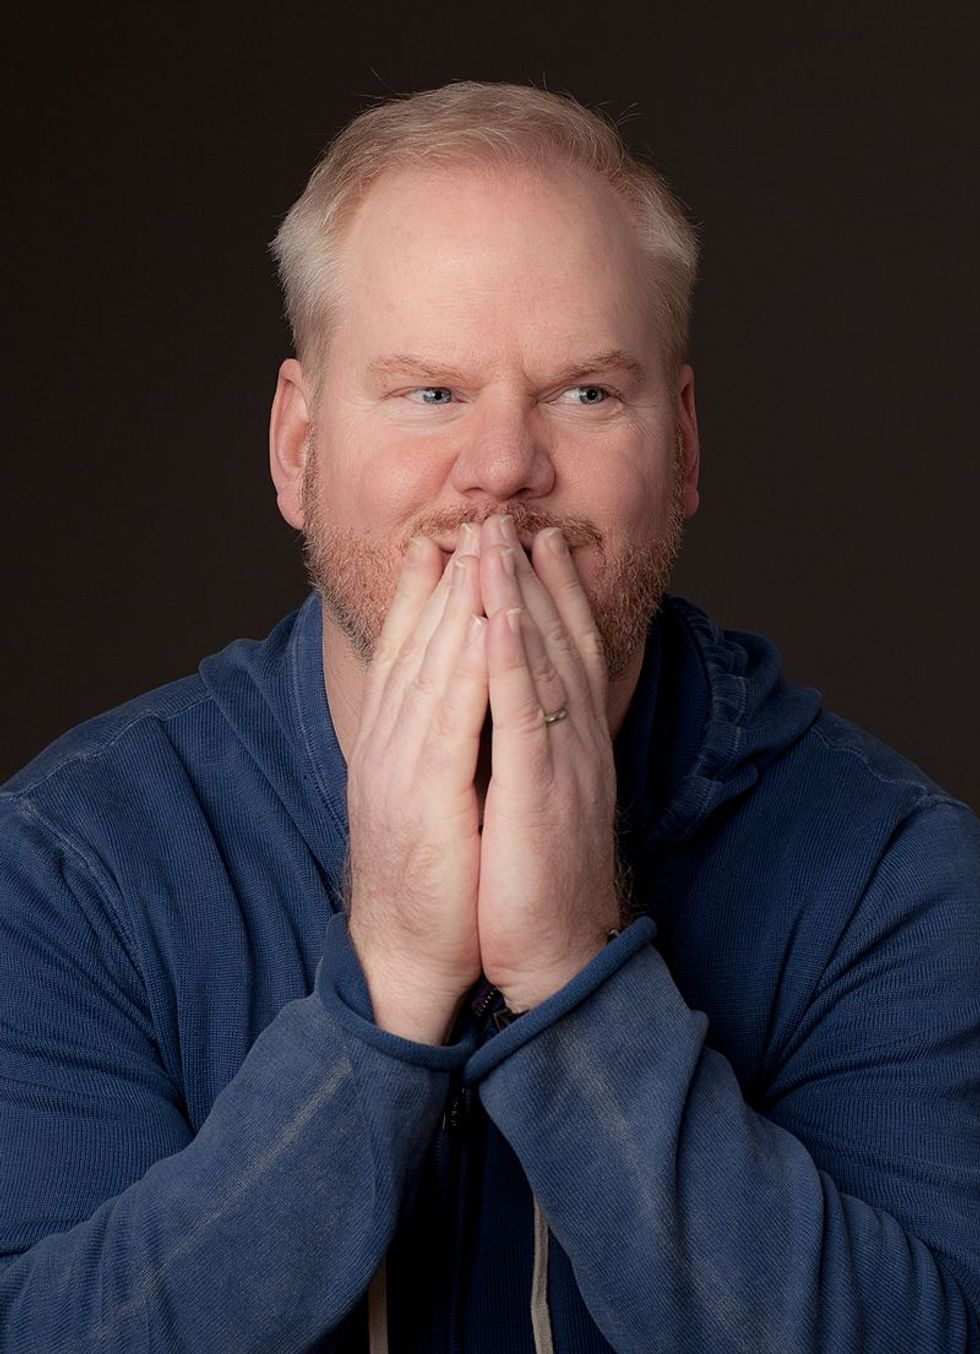 Jim Gaffigan, comedian who opened for the Pope, breaks silence and goes to town on Trump